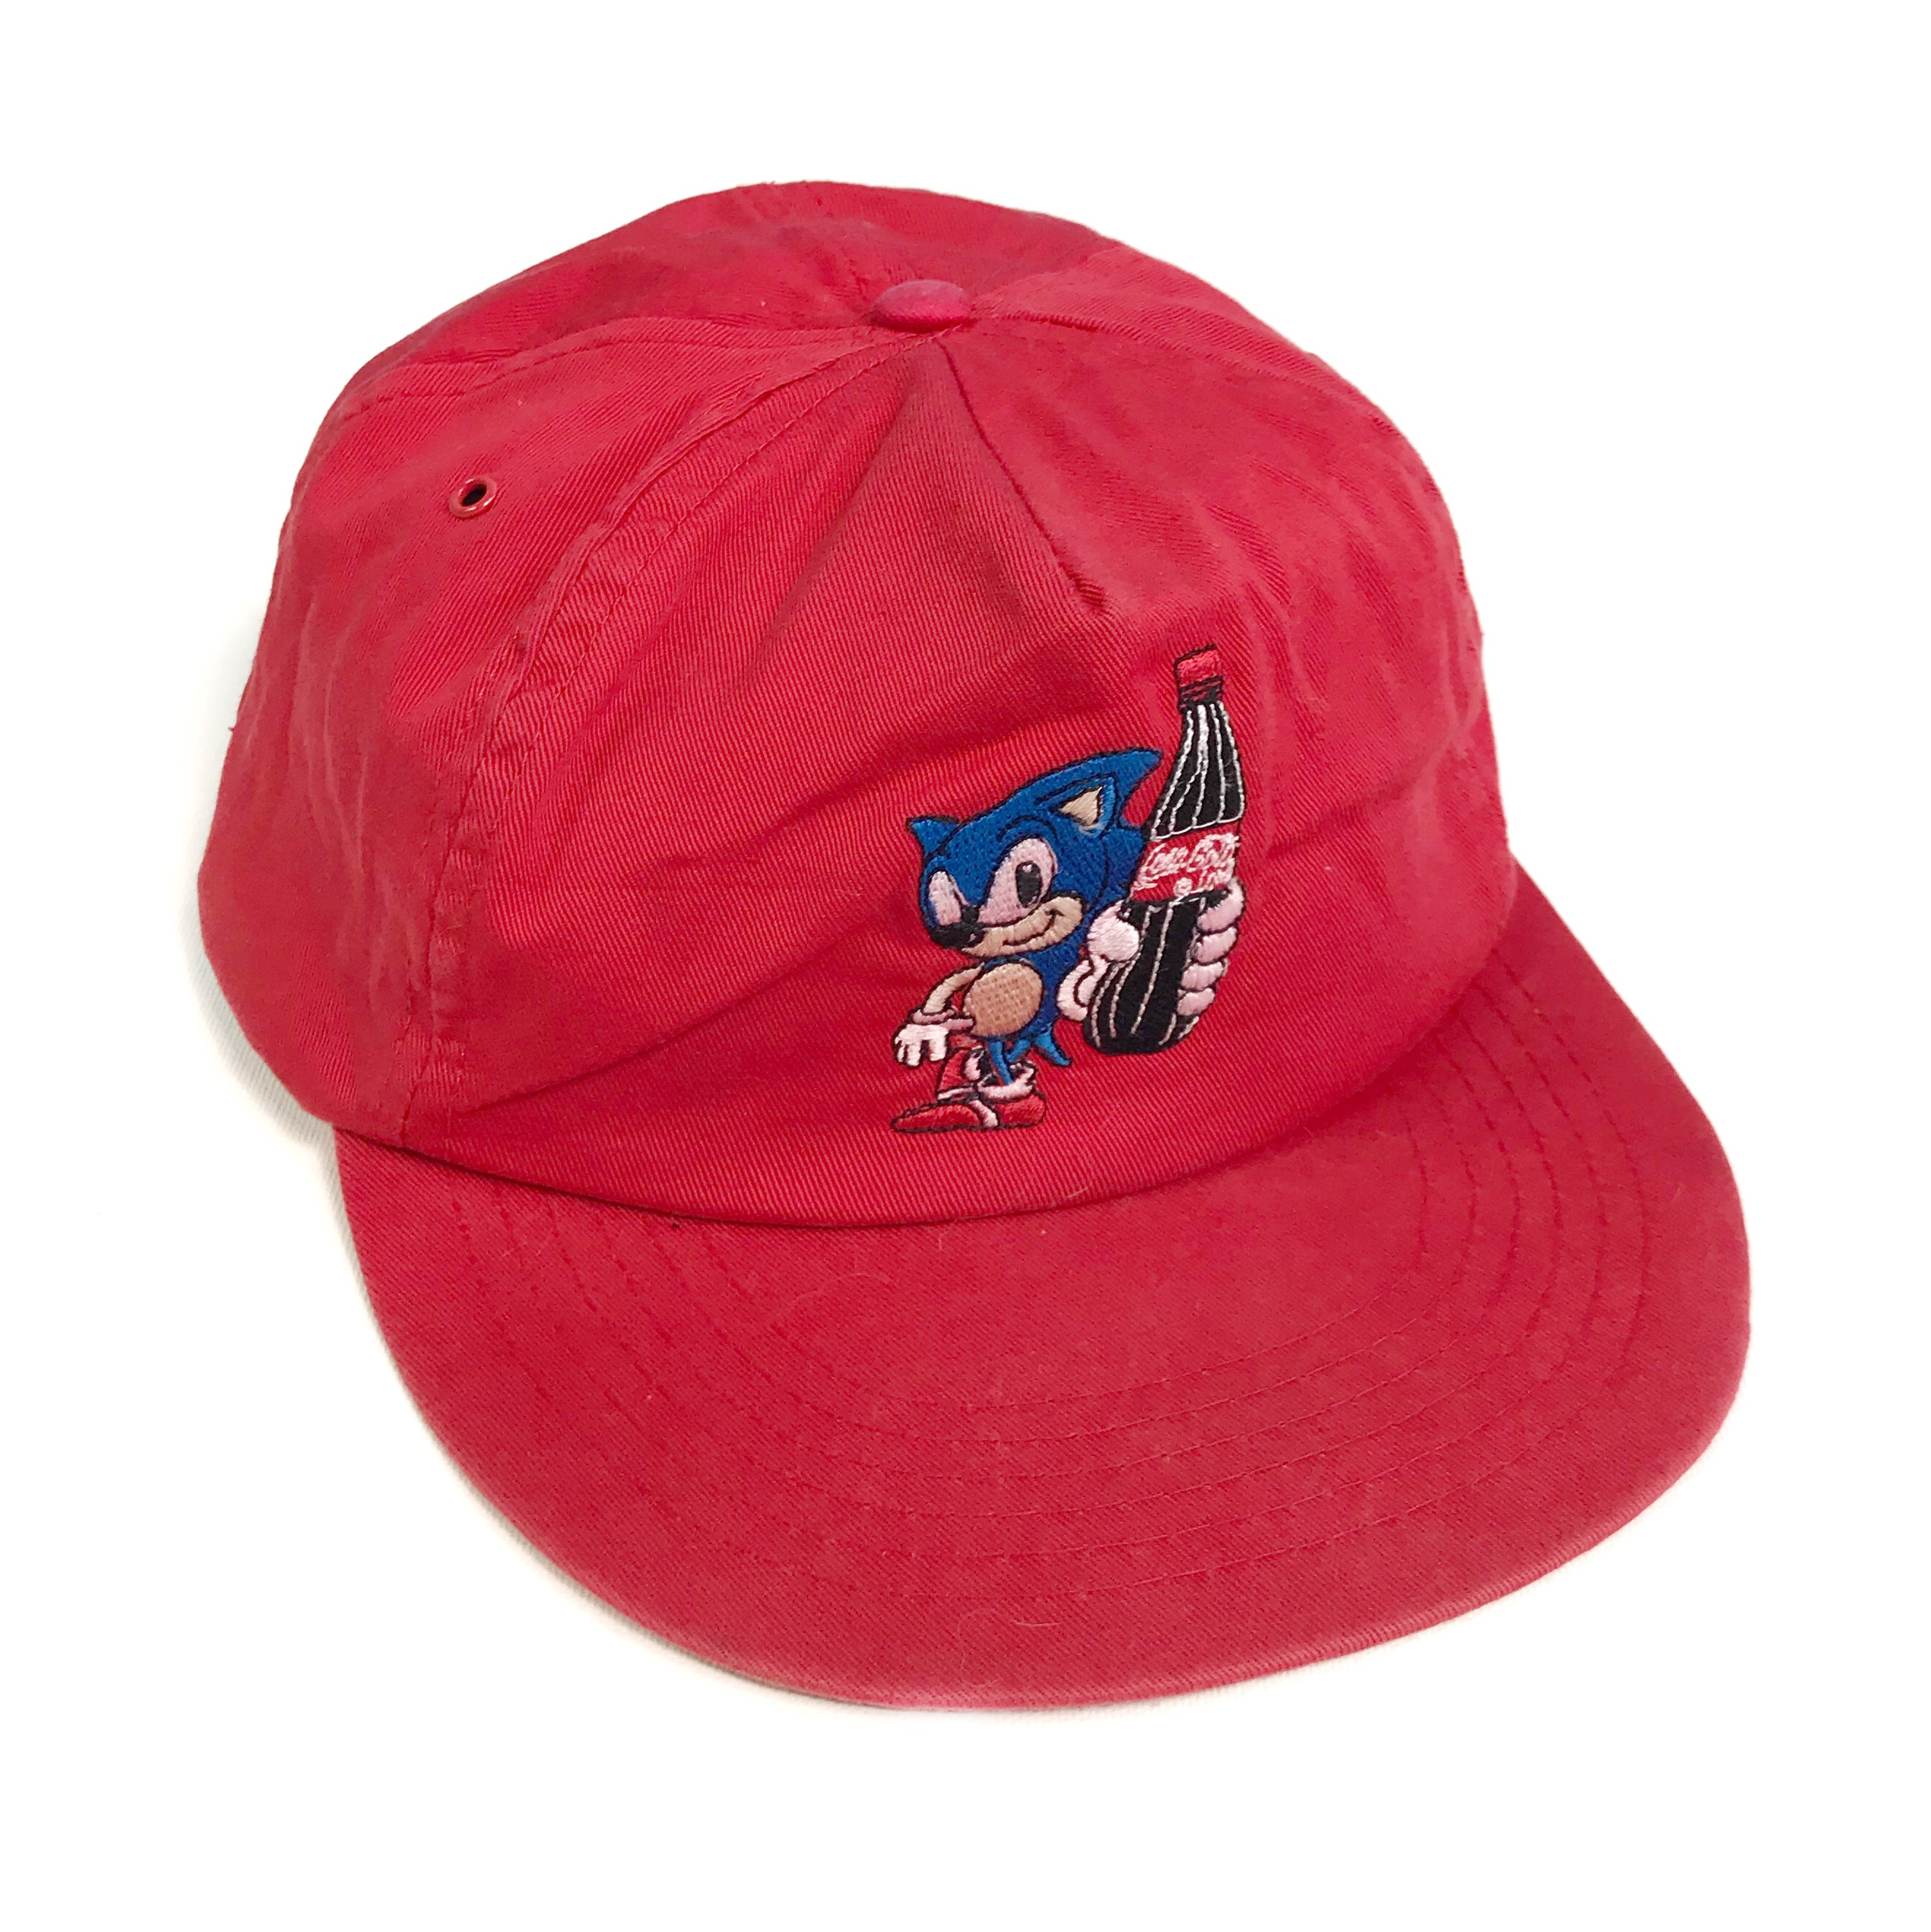 Super Rare 90s Coca Cola X Sonic The Hedgehog Hat Depop